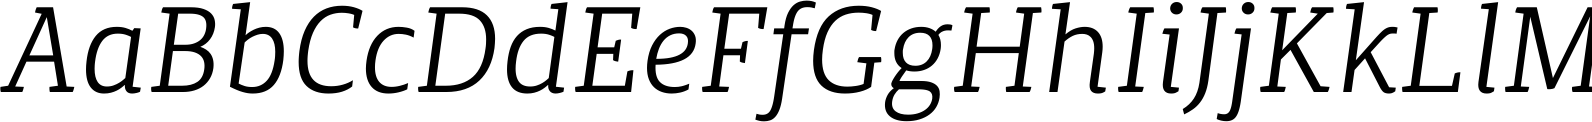 Canberra FY Book Italic Font